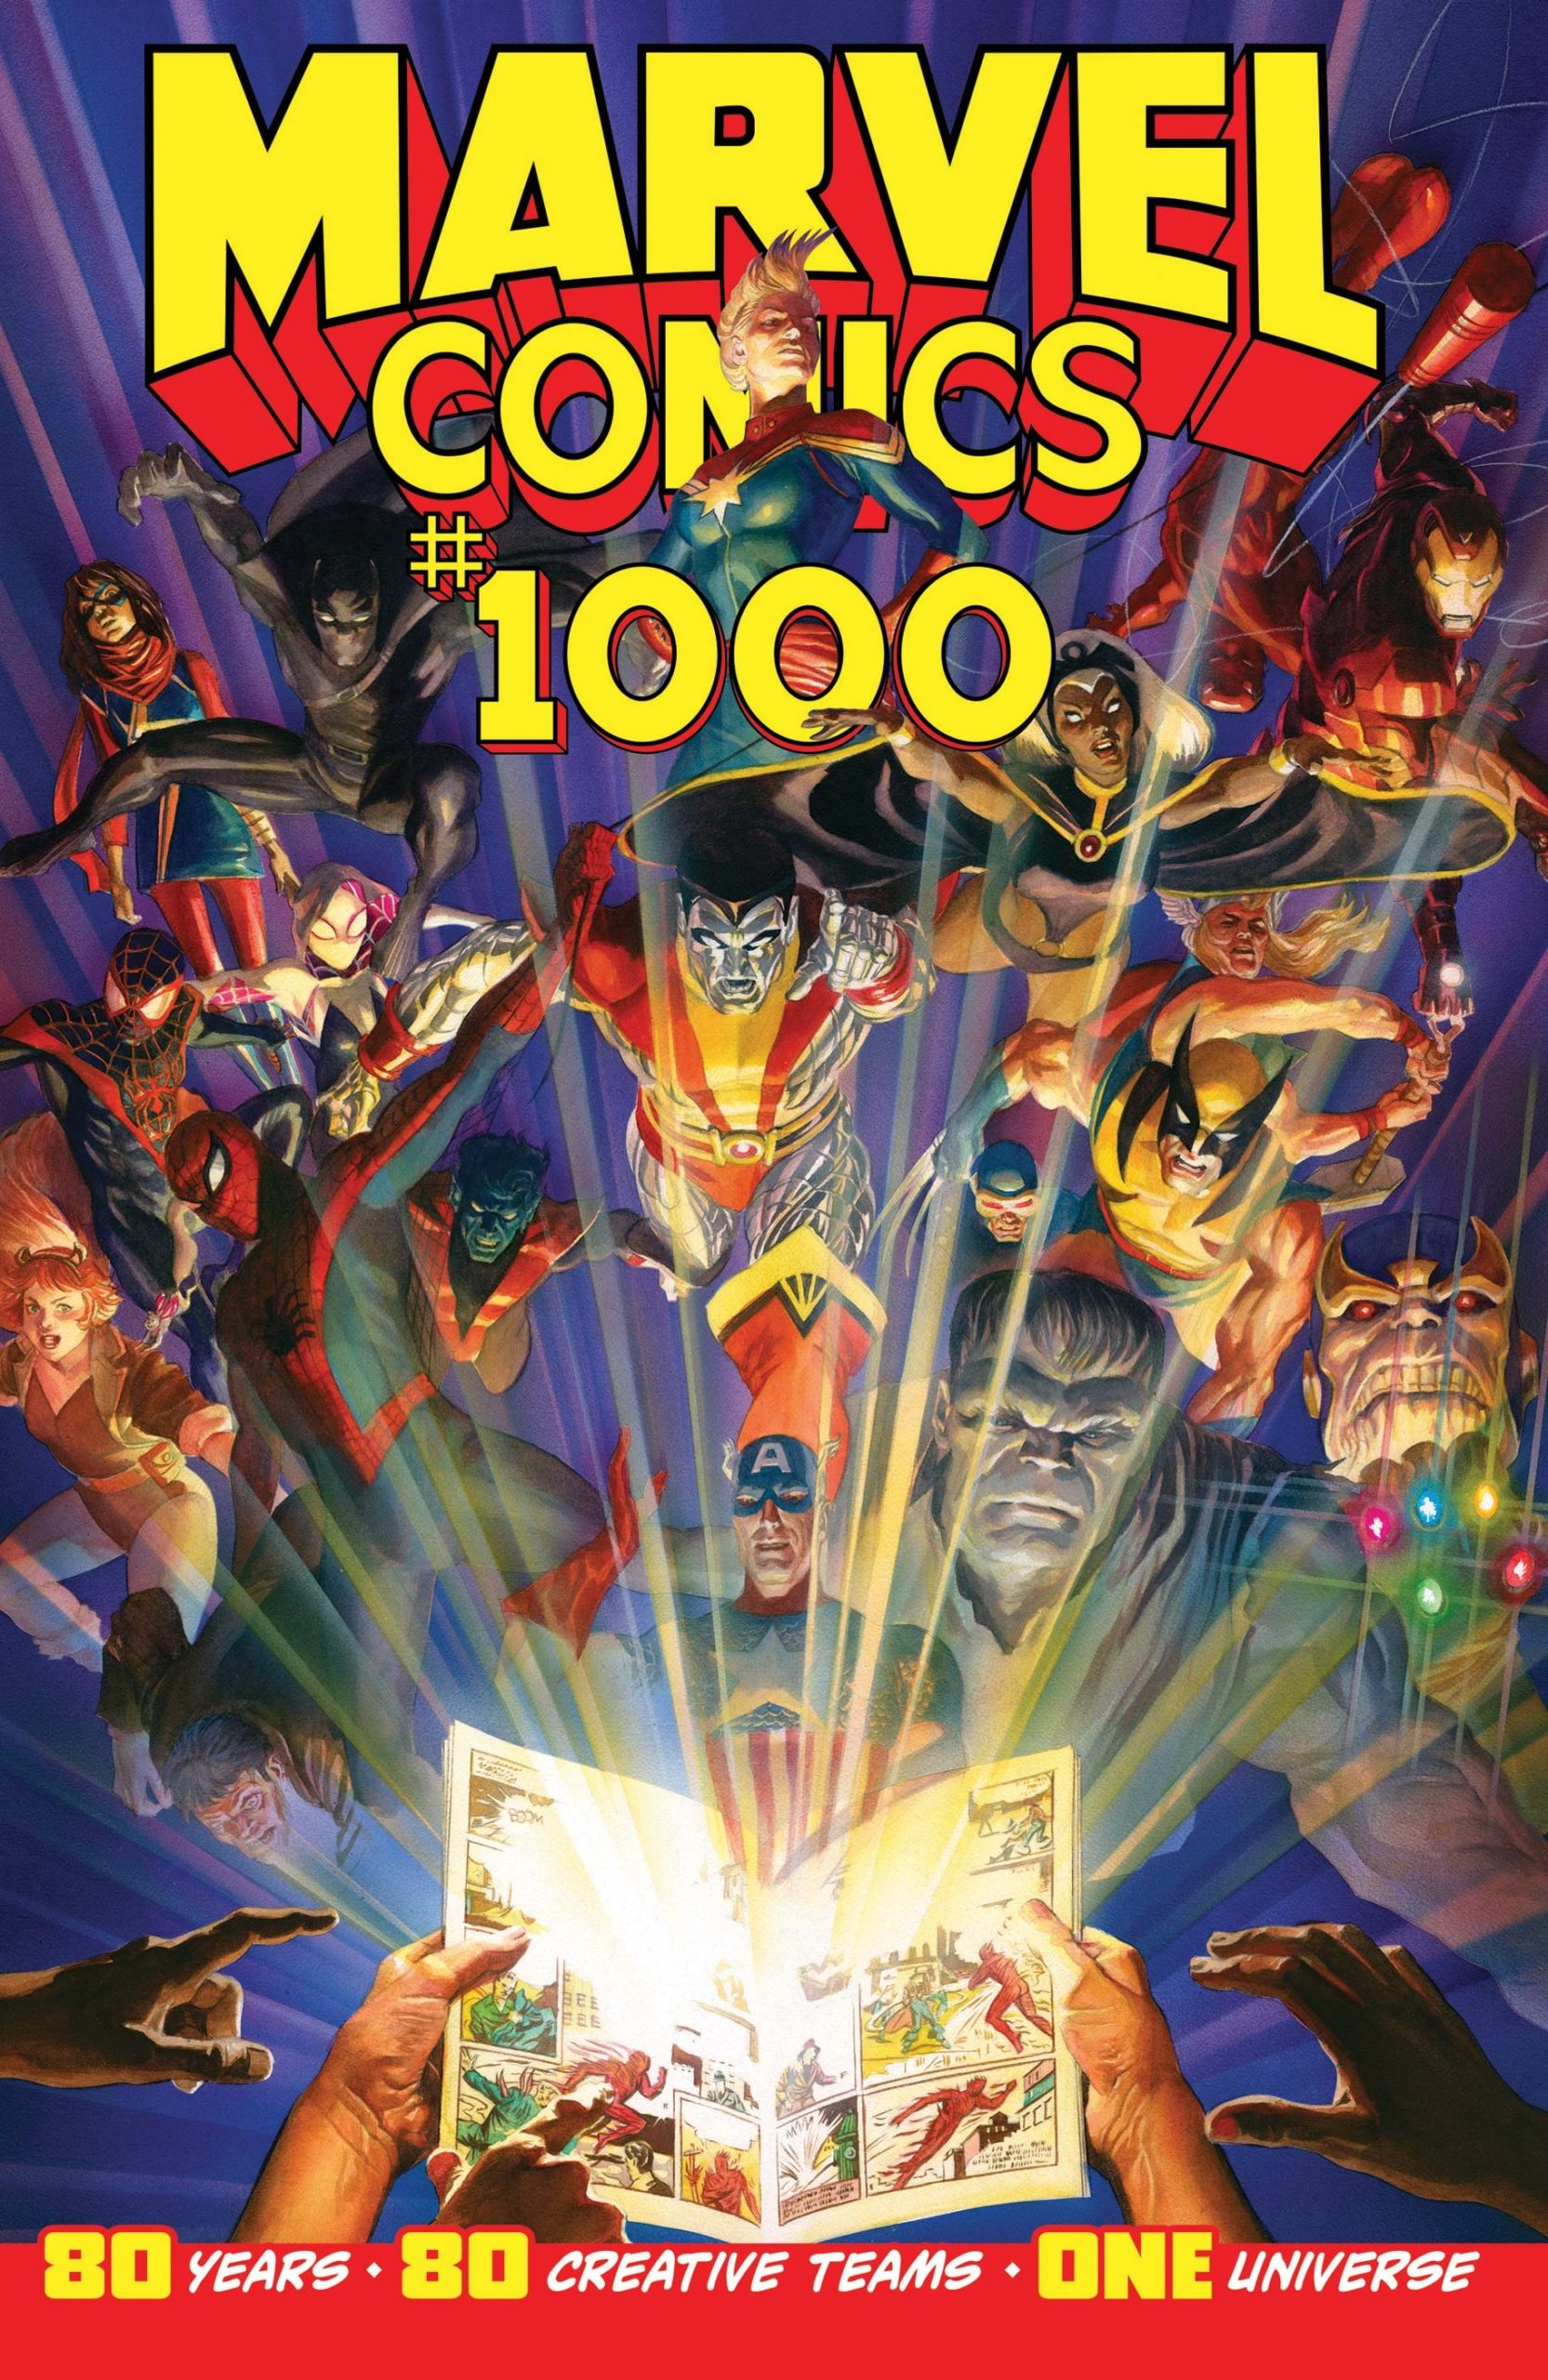 Reviewed: Marvel Comics #1000, Featuring Stories by Toby Whithouse and Neil Gaiman